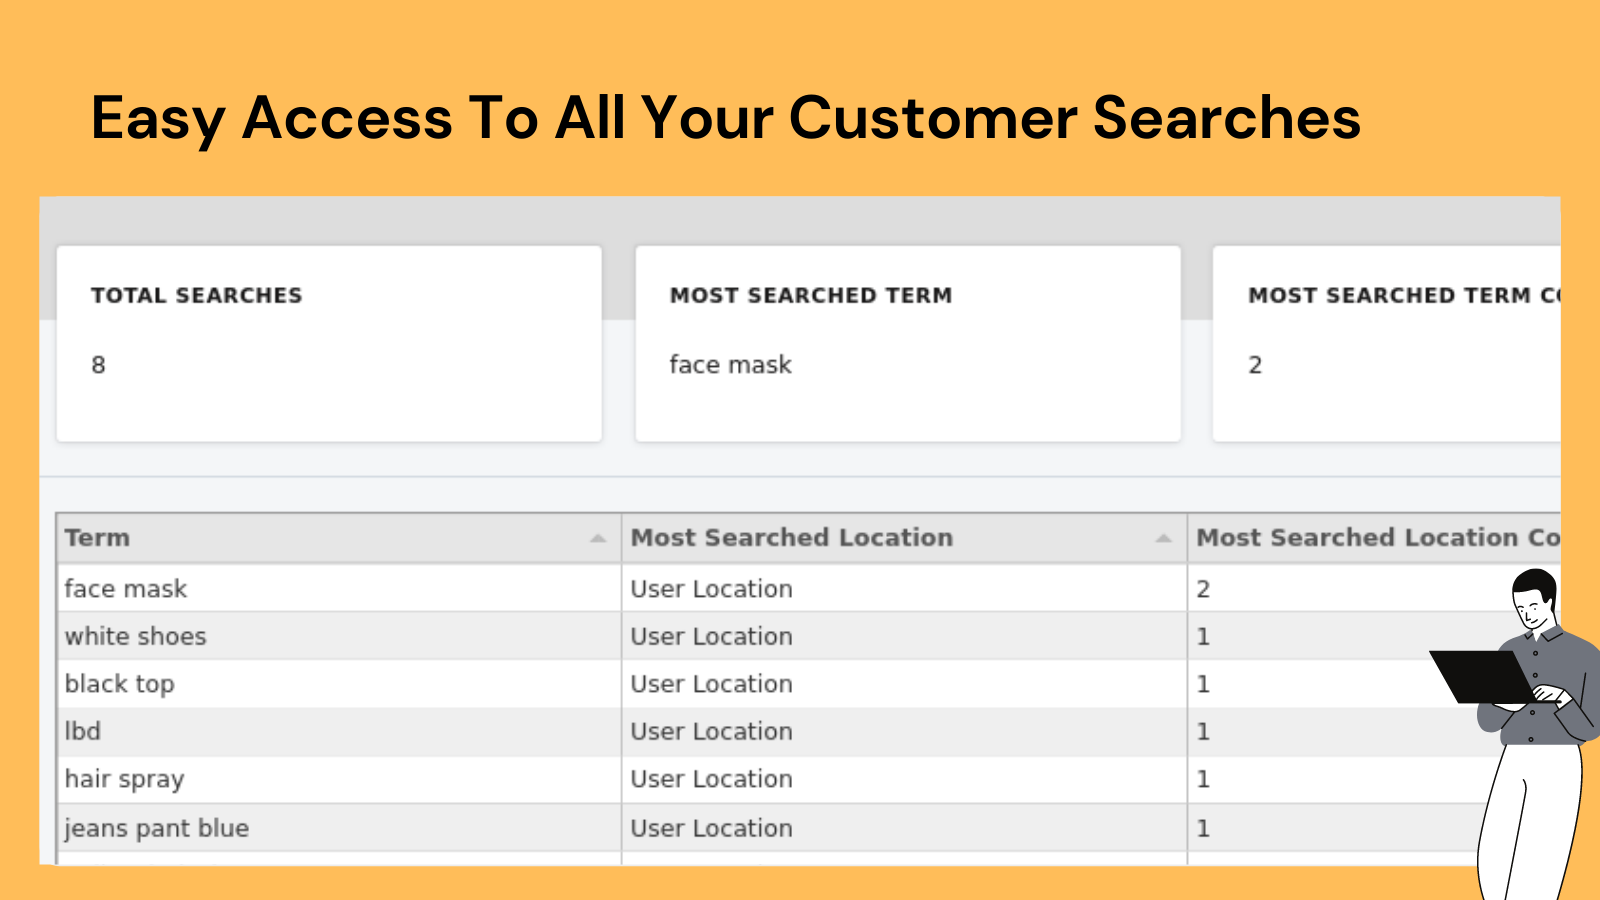 Easy Access To All Your Customer Searches